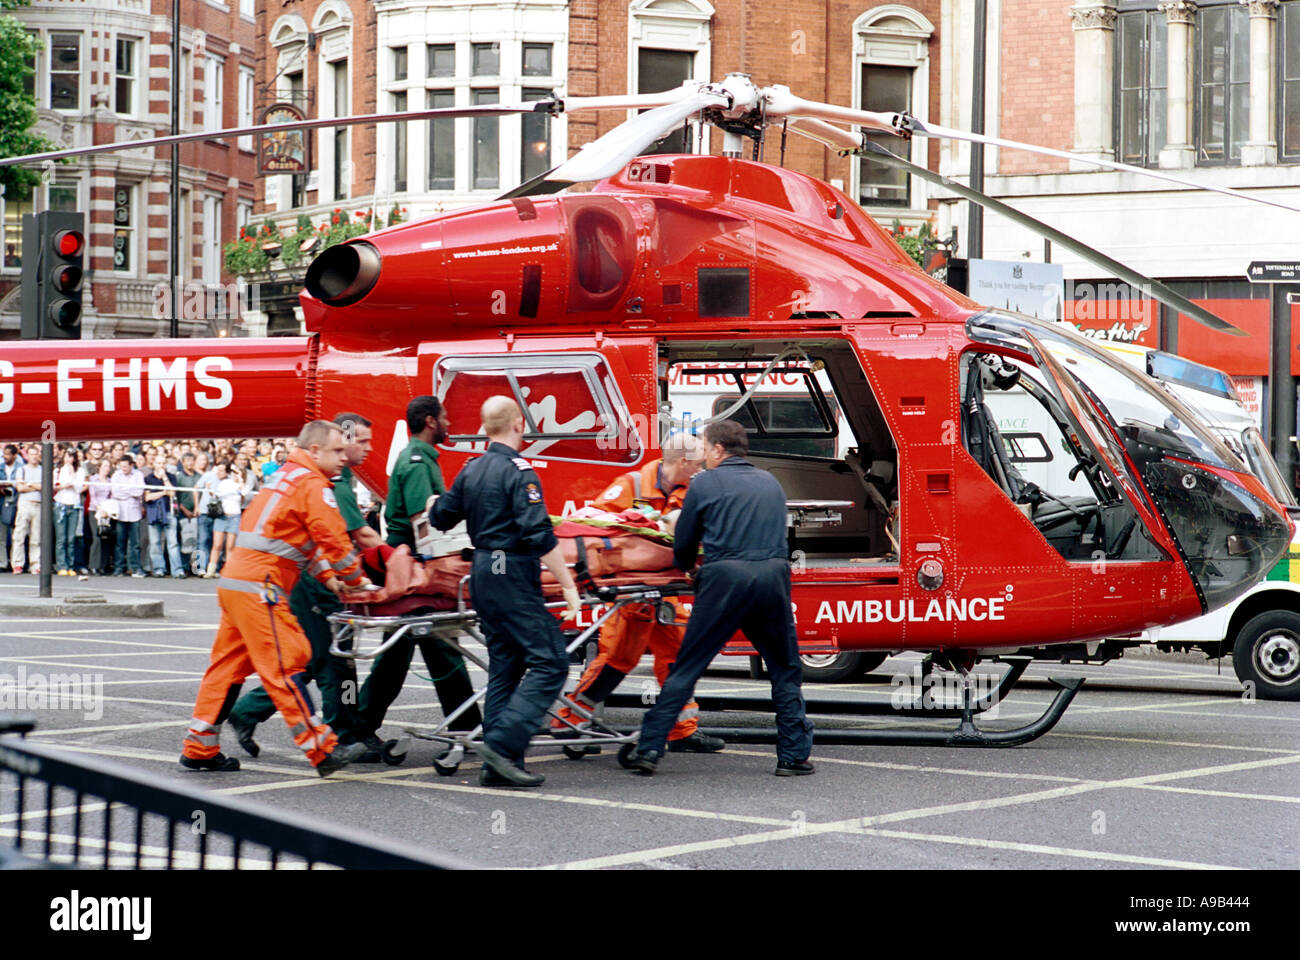 small turbine helicopter with Stock Photo Virgin Air Ambulance Helicopter London England Britain Uk 635972 on Used Robinson R66 Turbine 2014 likewise Watch further Turbine Engine Fuel Systemgeneral moreover 6 moreover Rc Jets.